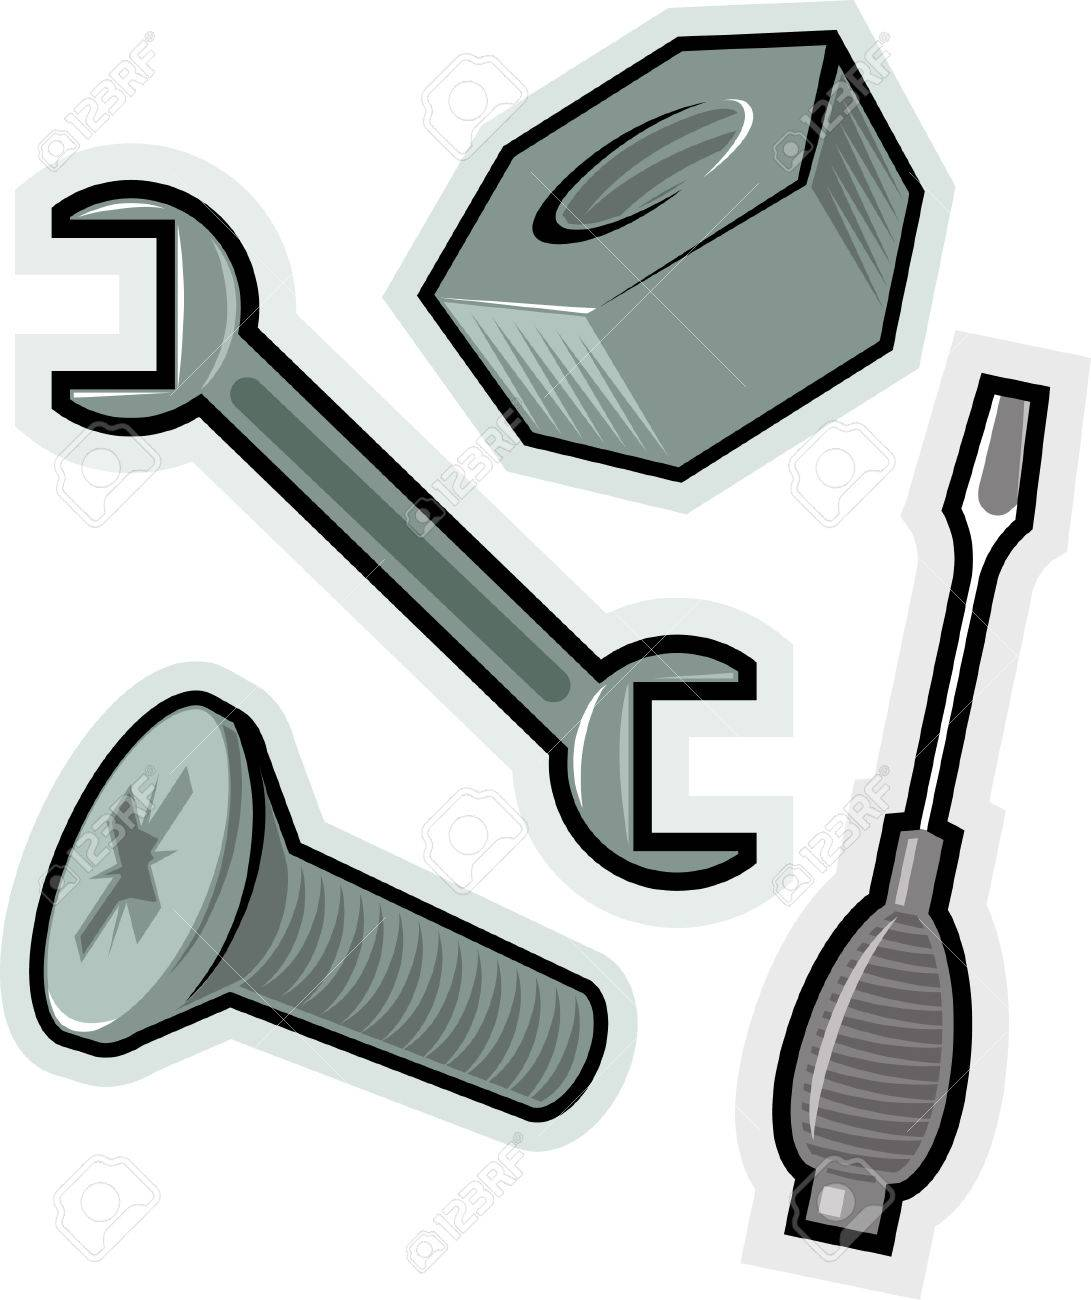 Objects For Screwing. Vector Illustration. Royalty Free Cliparts ...